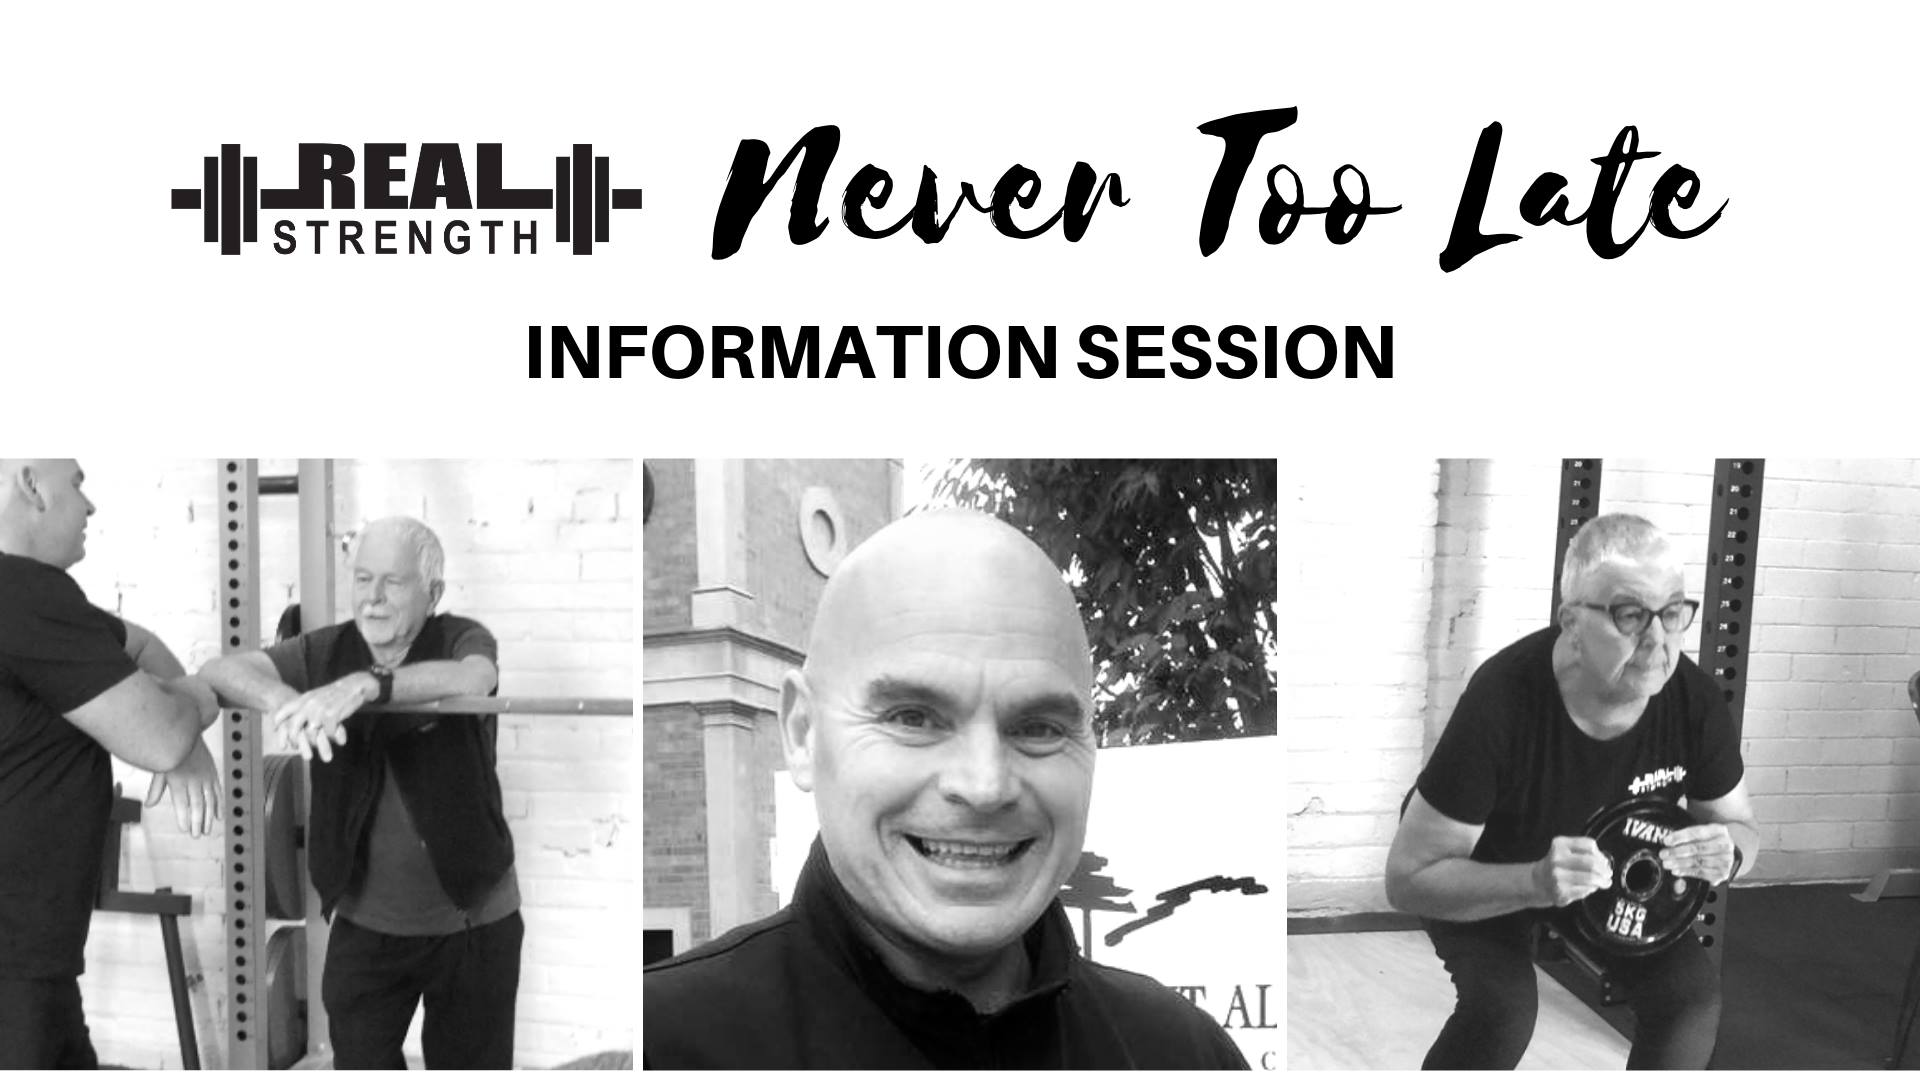 Never too late – Real Strength training information sessions